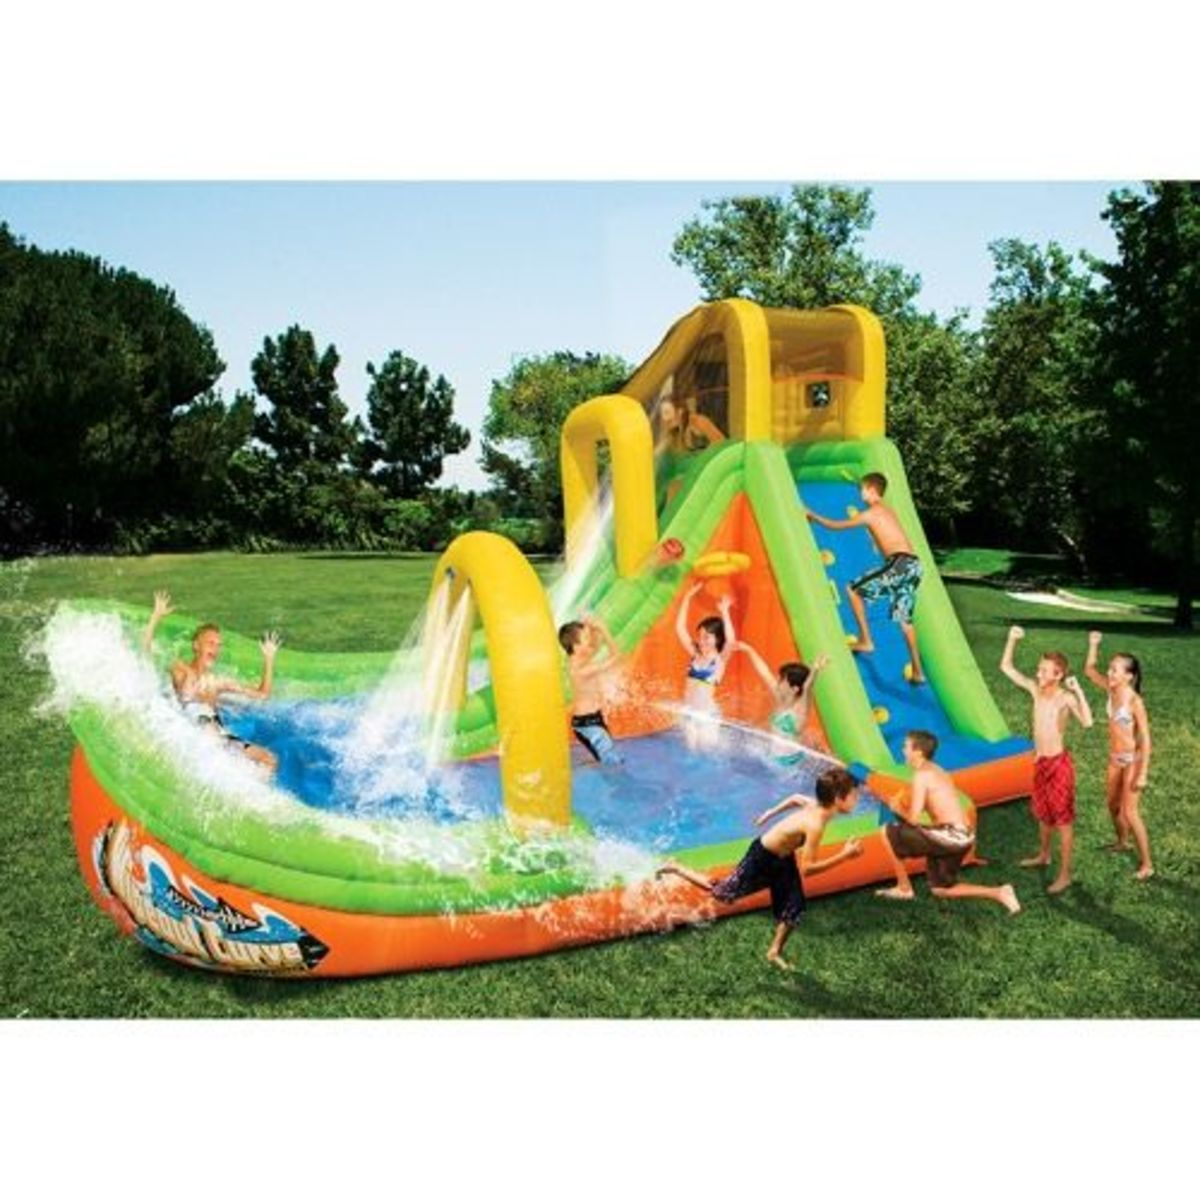 Inflatable Slide Walmart: The Best Giant Water Slides For Sale